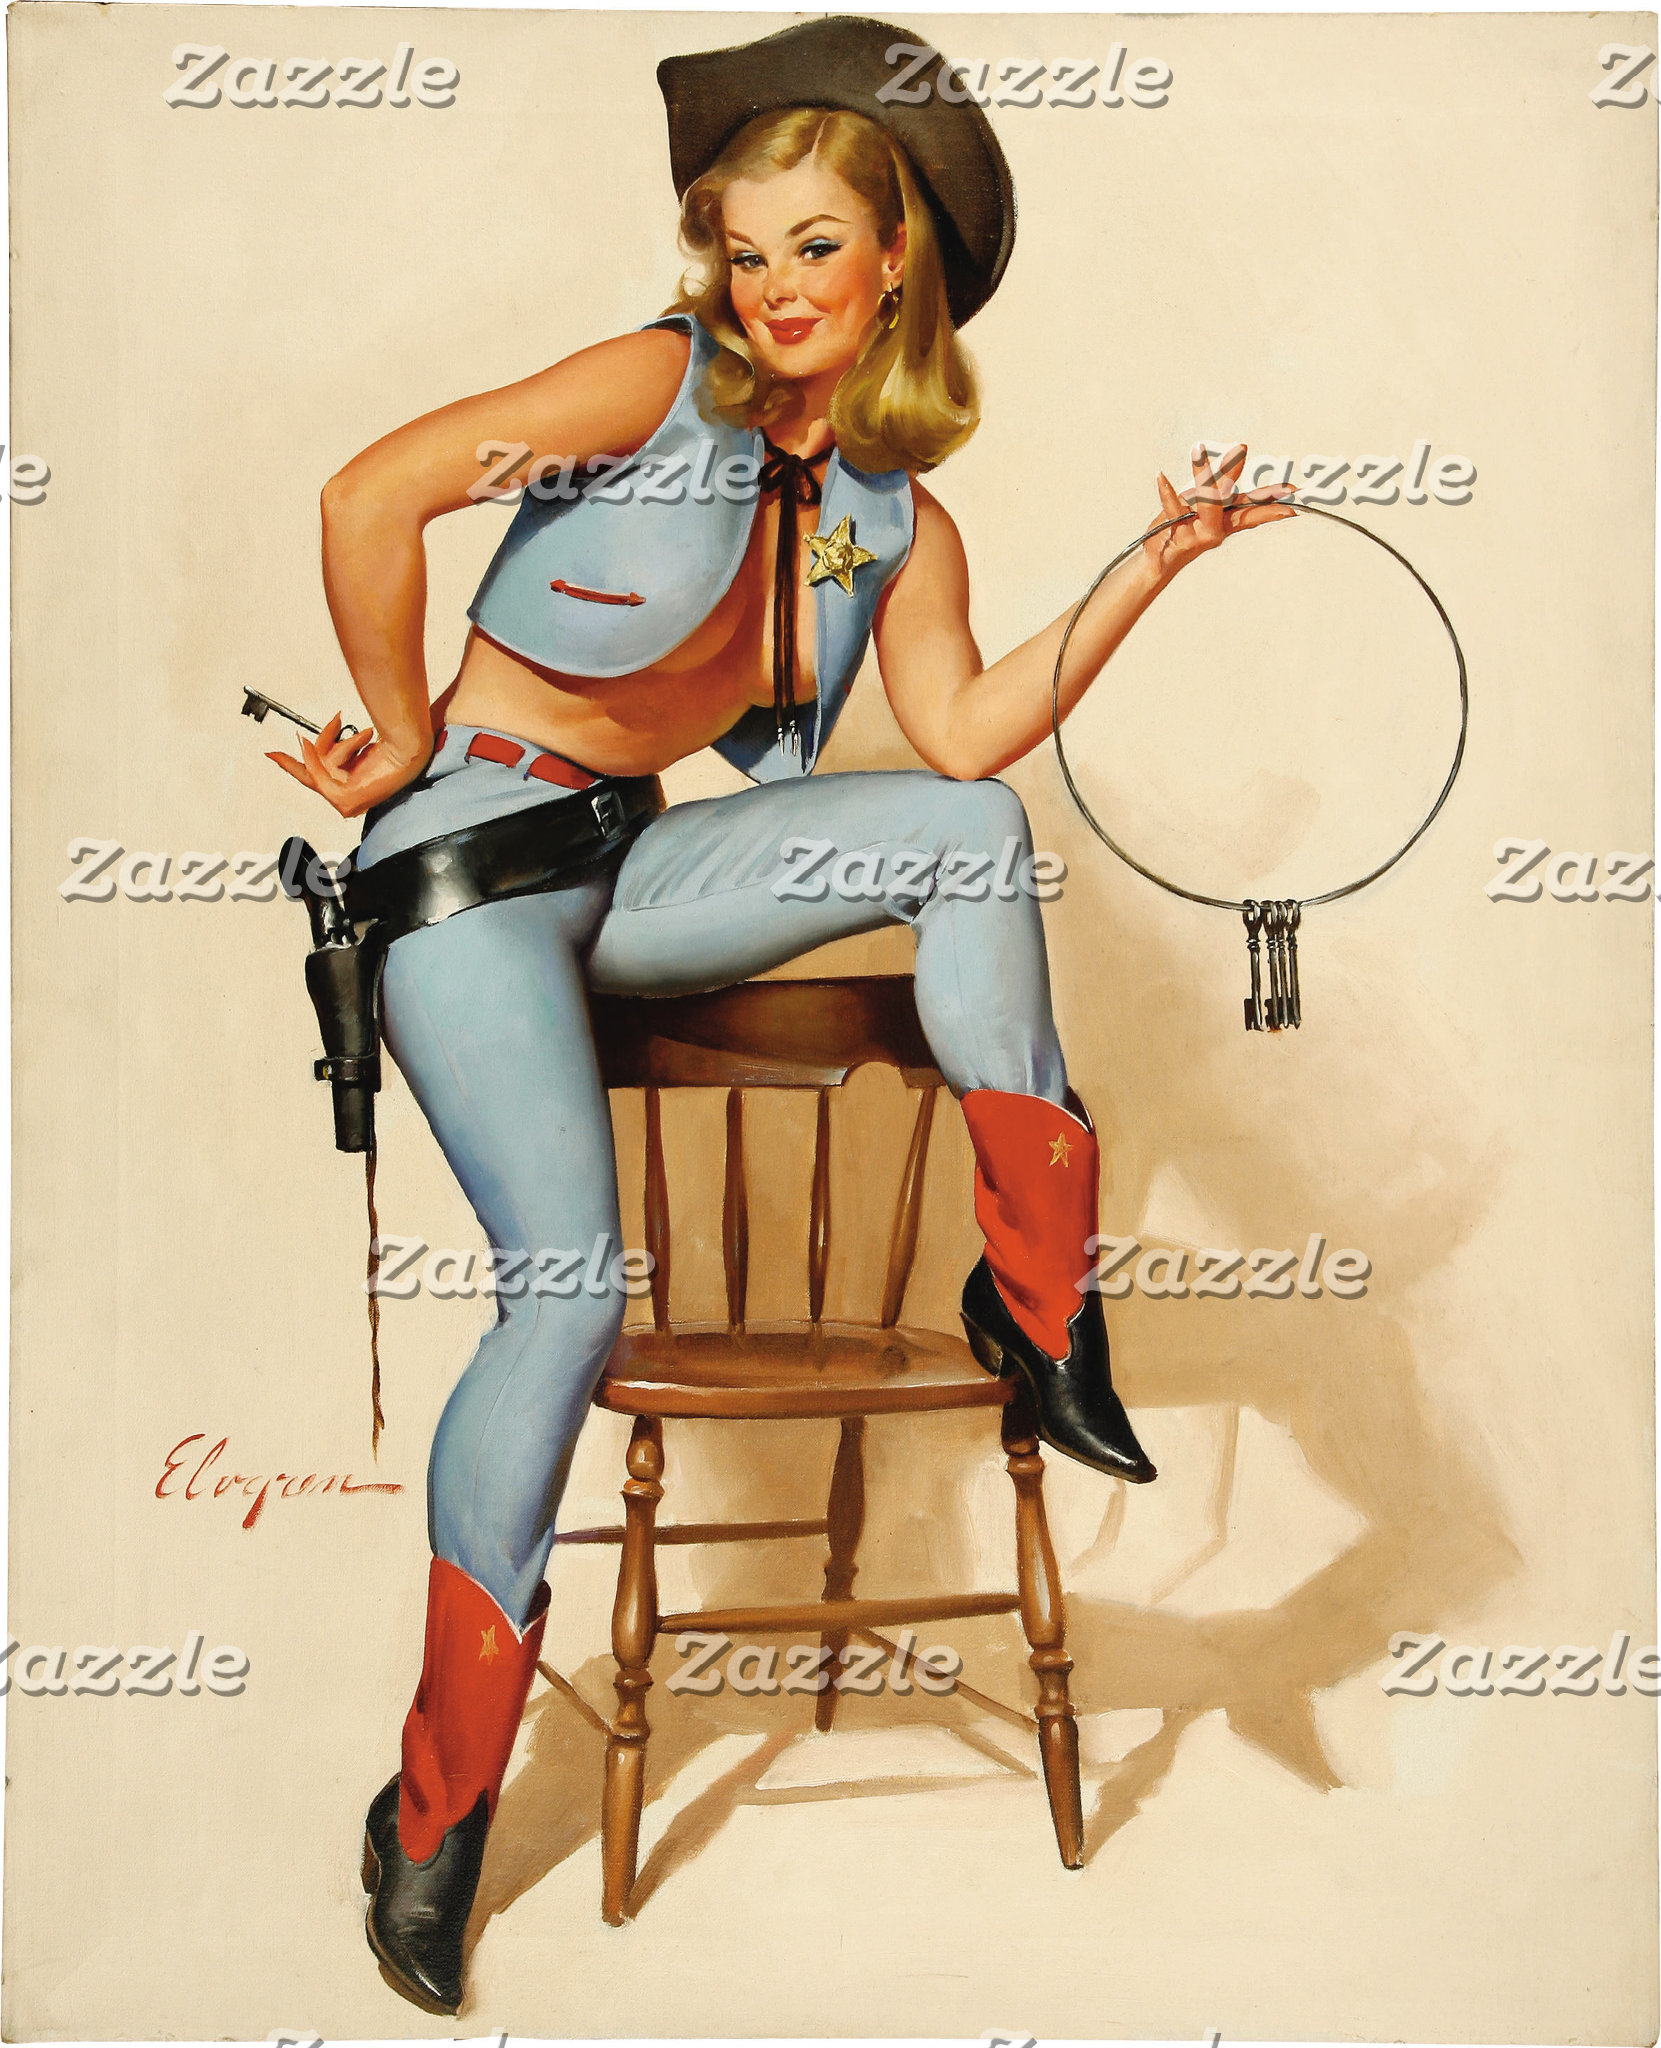 Cowgirl Pin-up Girl